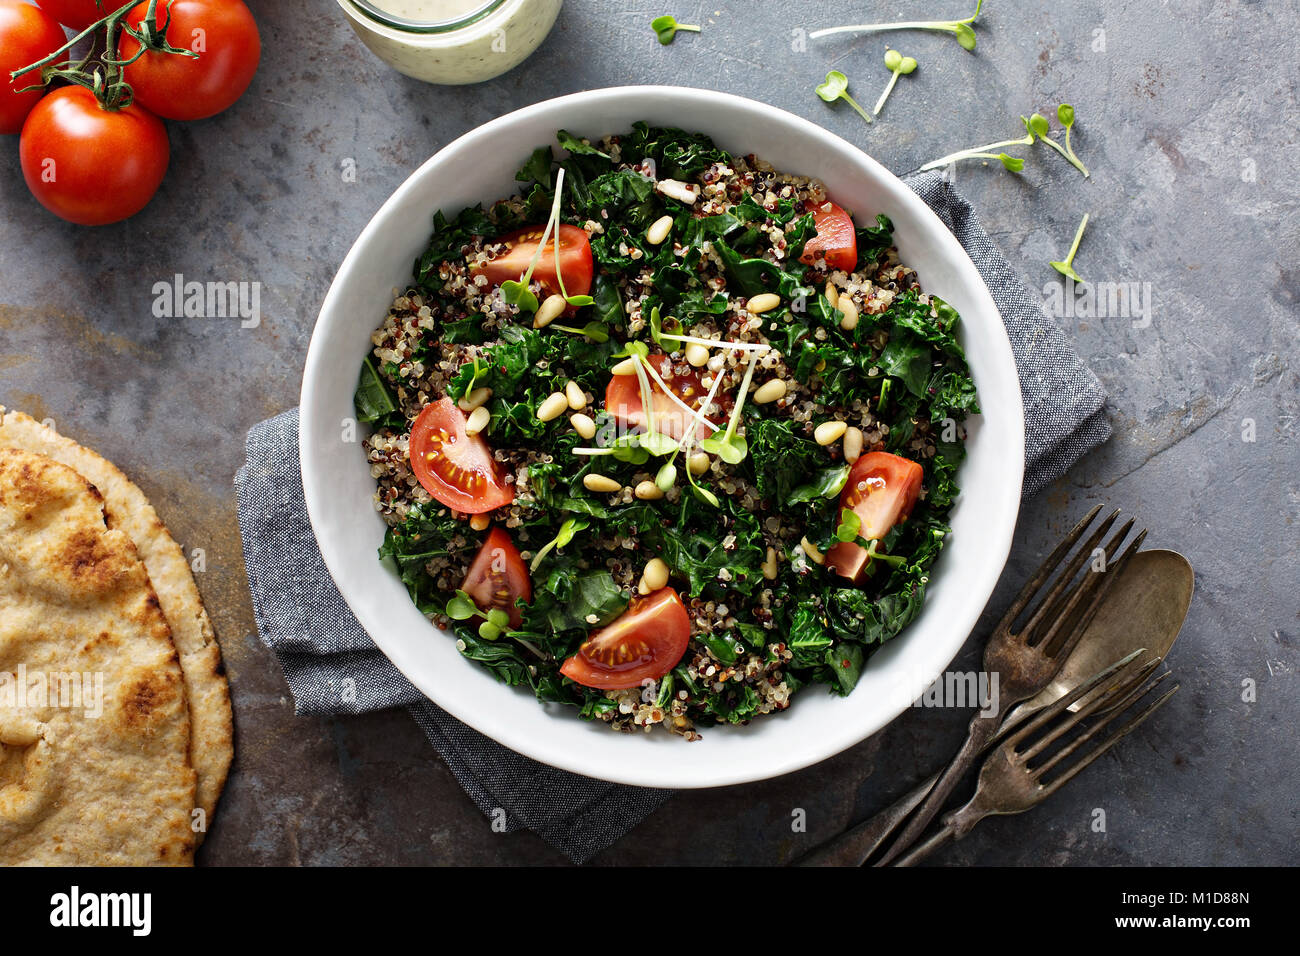 Kale and quinoa salad with tomatoes - Stock Image